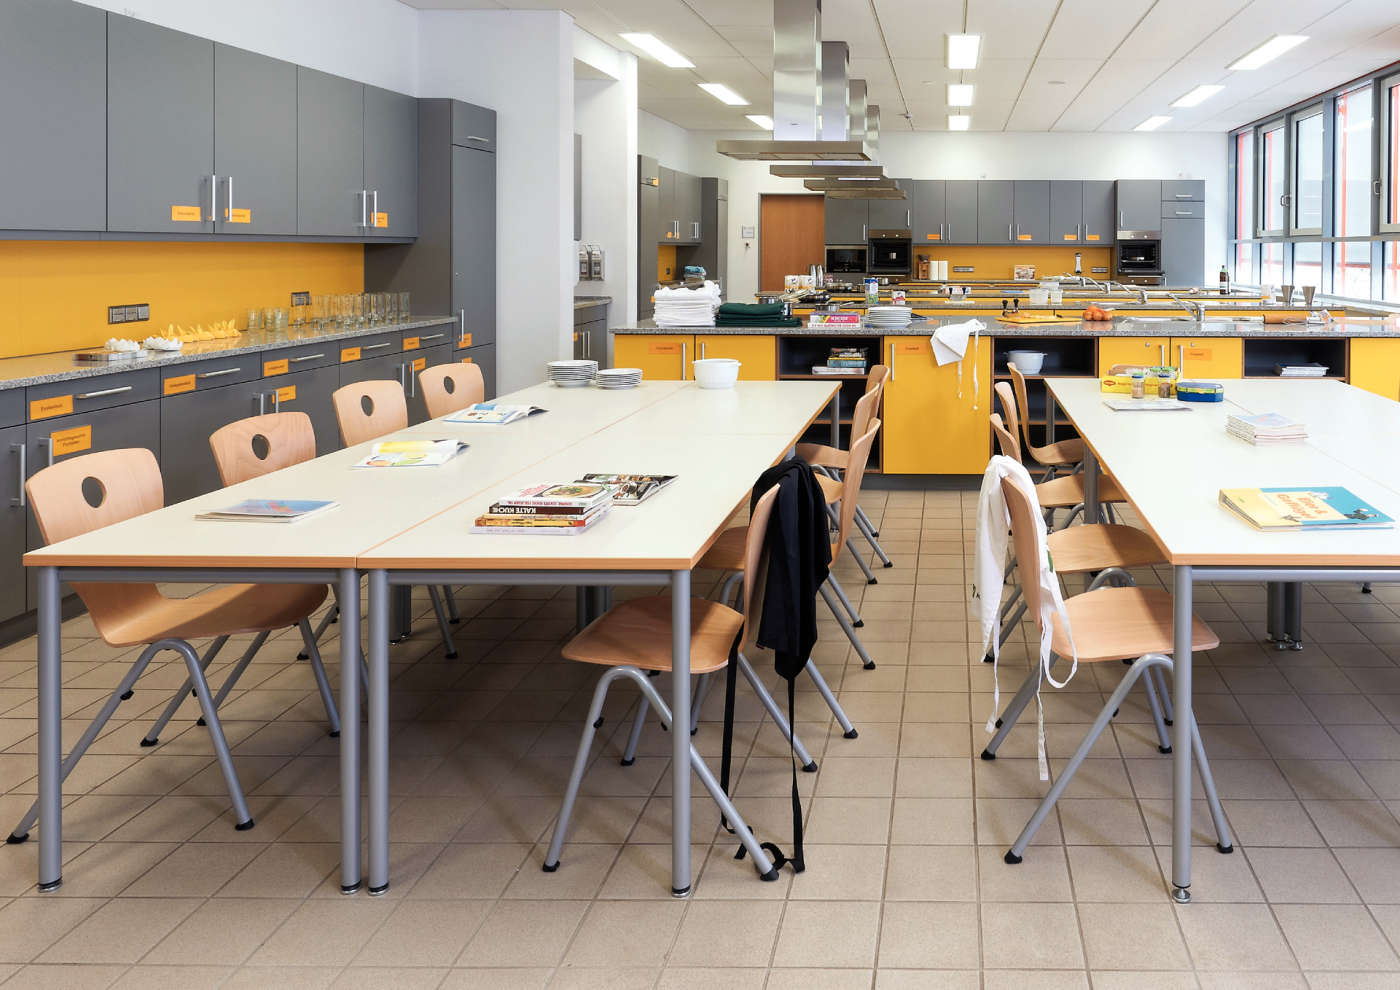 Furniture for the classroom kitchen.